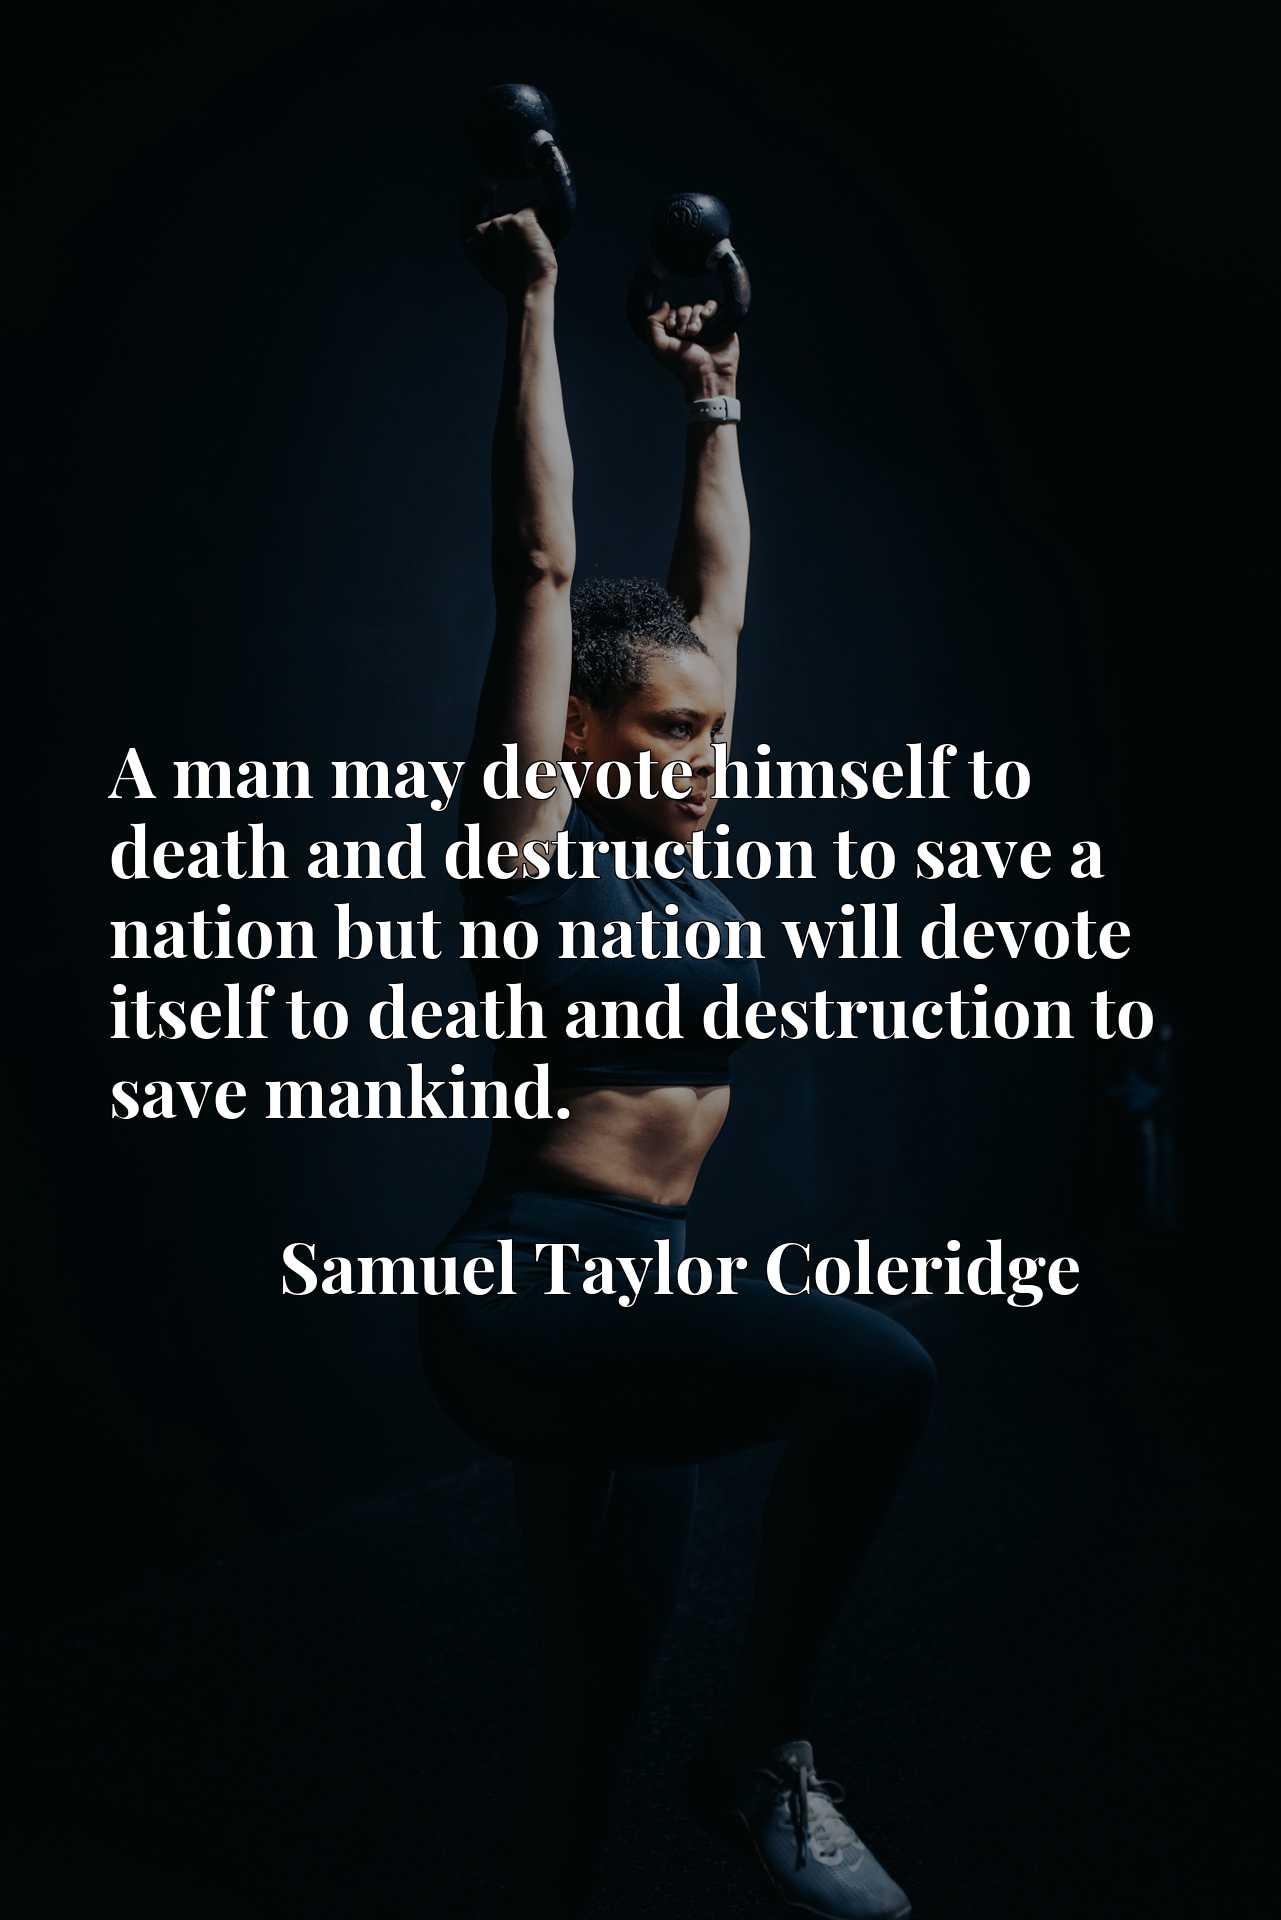 A man may devote himself to death and destruction to save a nation but no nation will devote itself to death and destruction to save mankind.